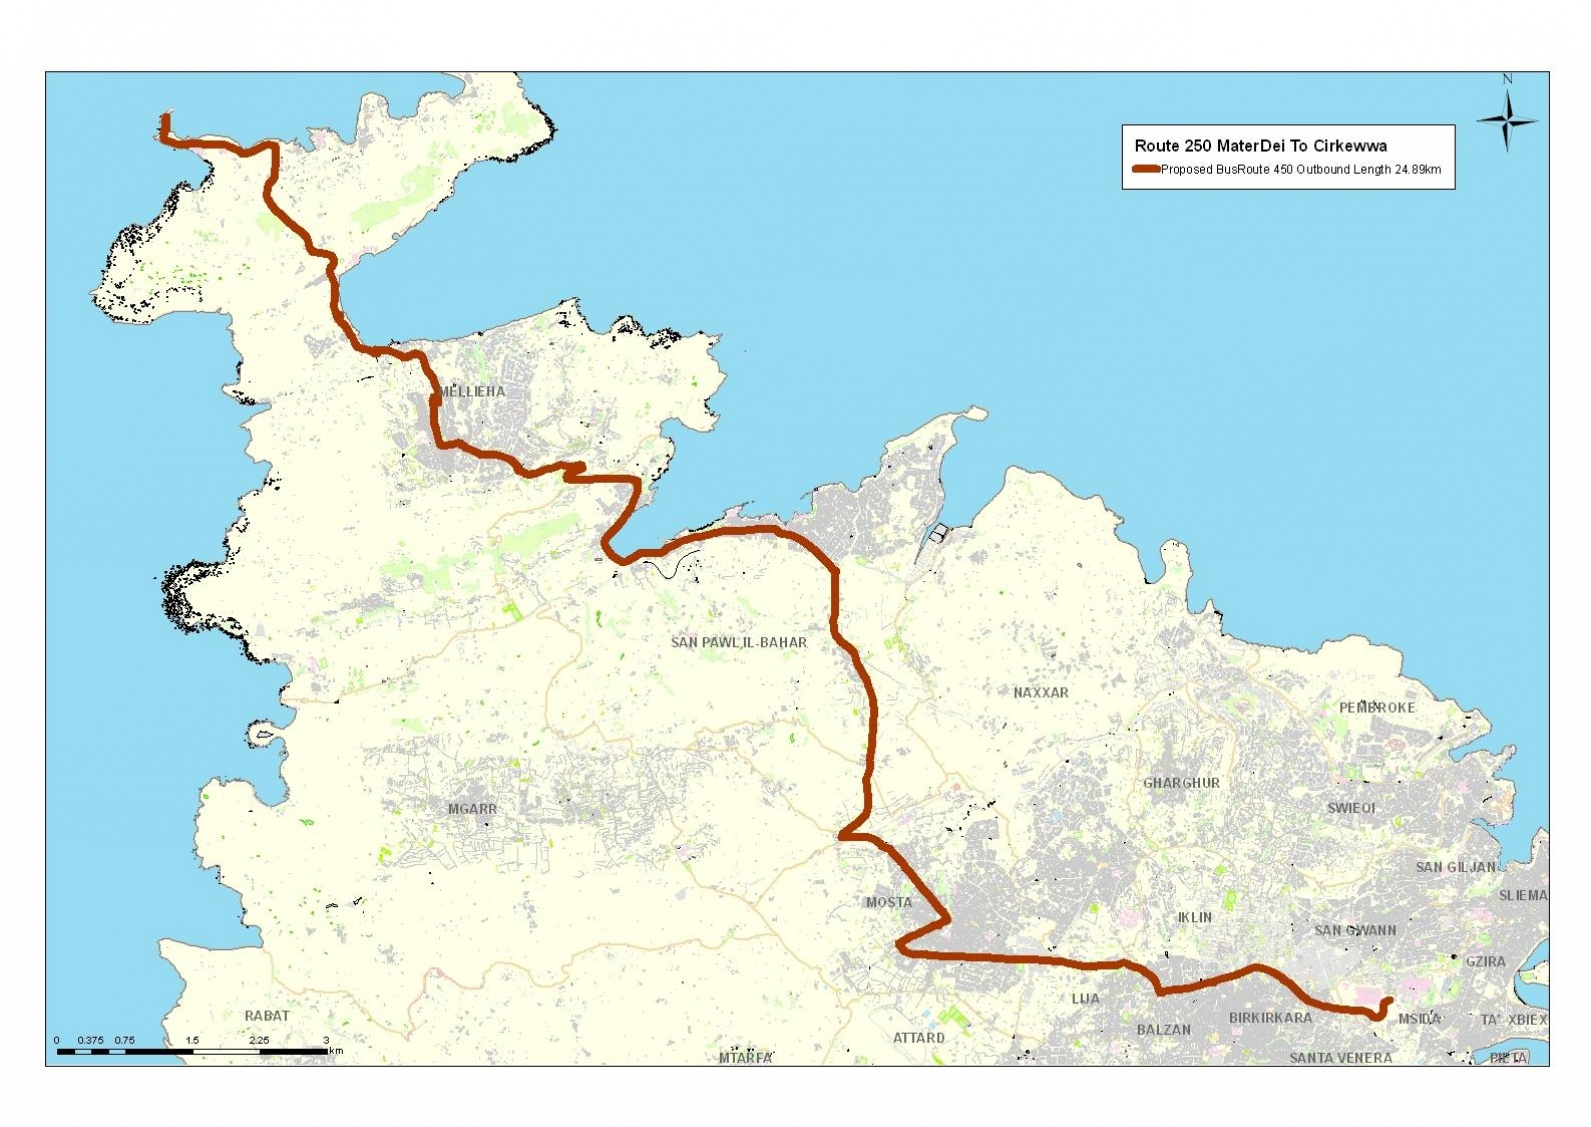 Land-current-network-routes-and-schedules-Cirkewwa-mellieha-sliema-14